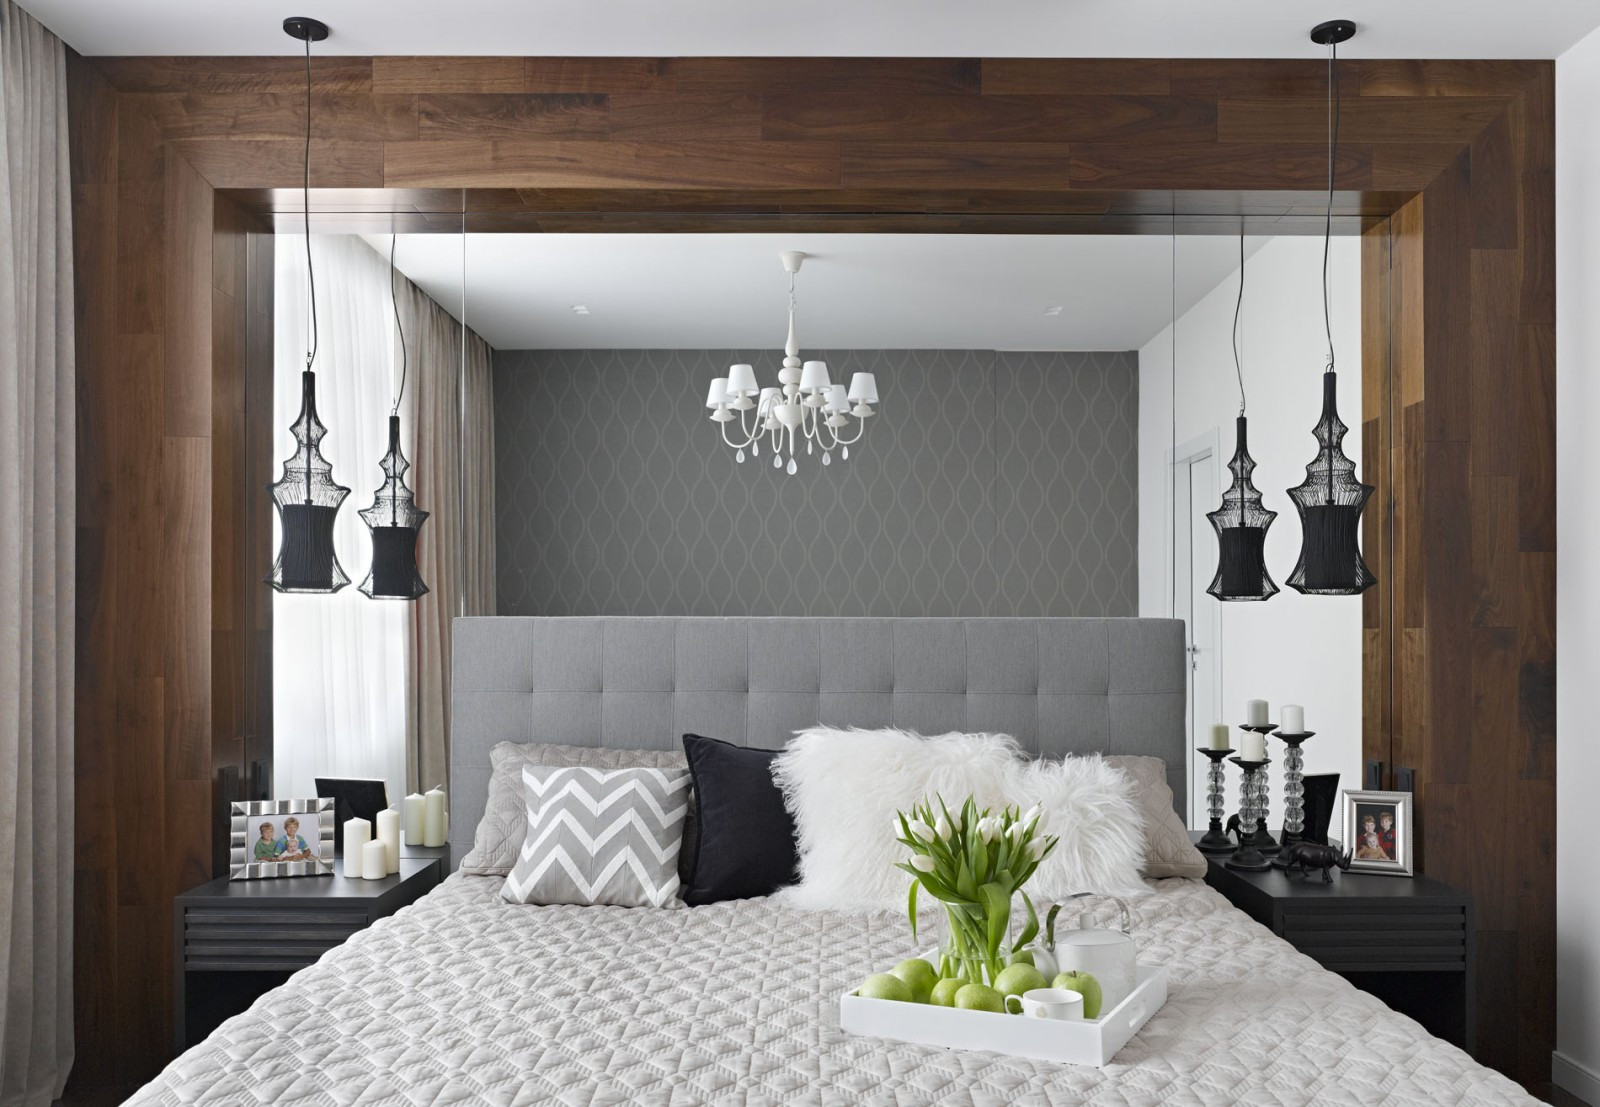 Best ideas about Small Bedroom Design . Save or Pin 20 Small Bedroom Ideas That Will Leave You Speechless Now.